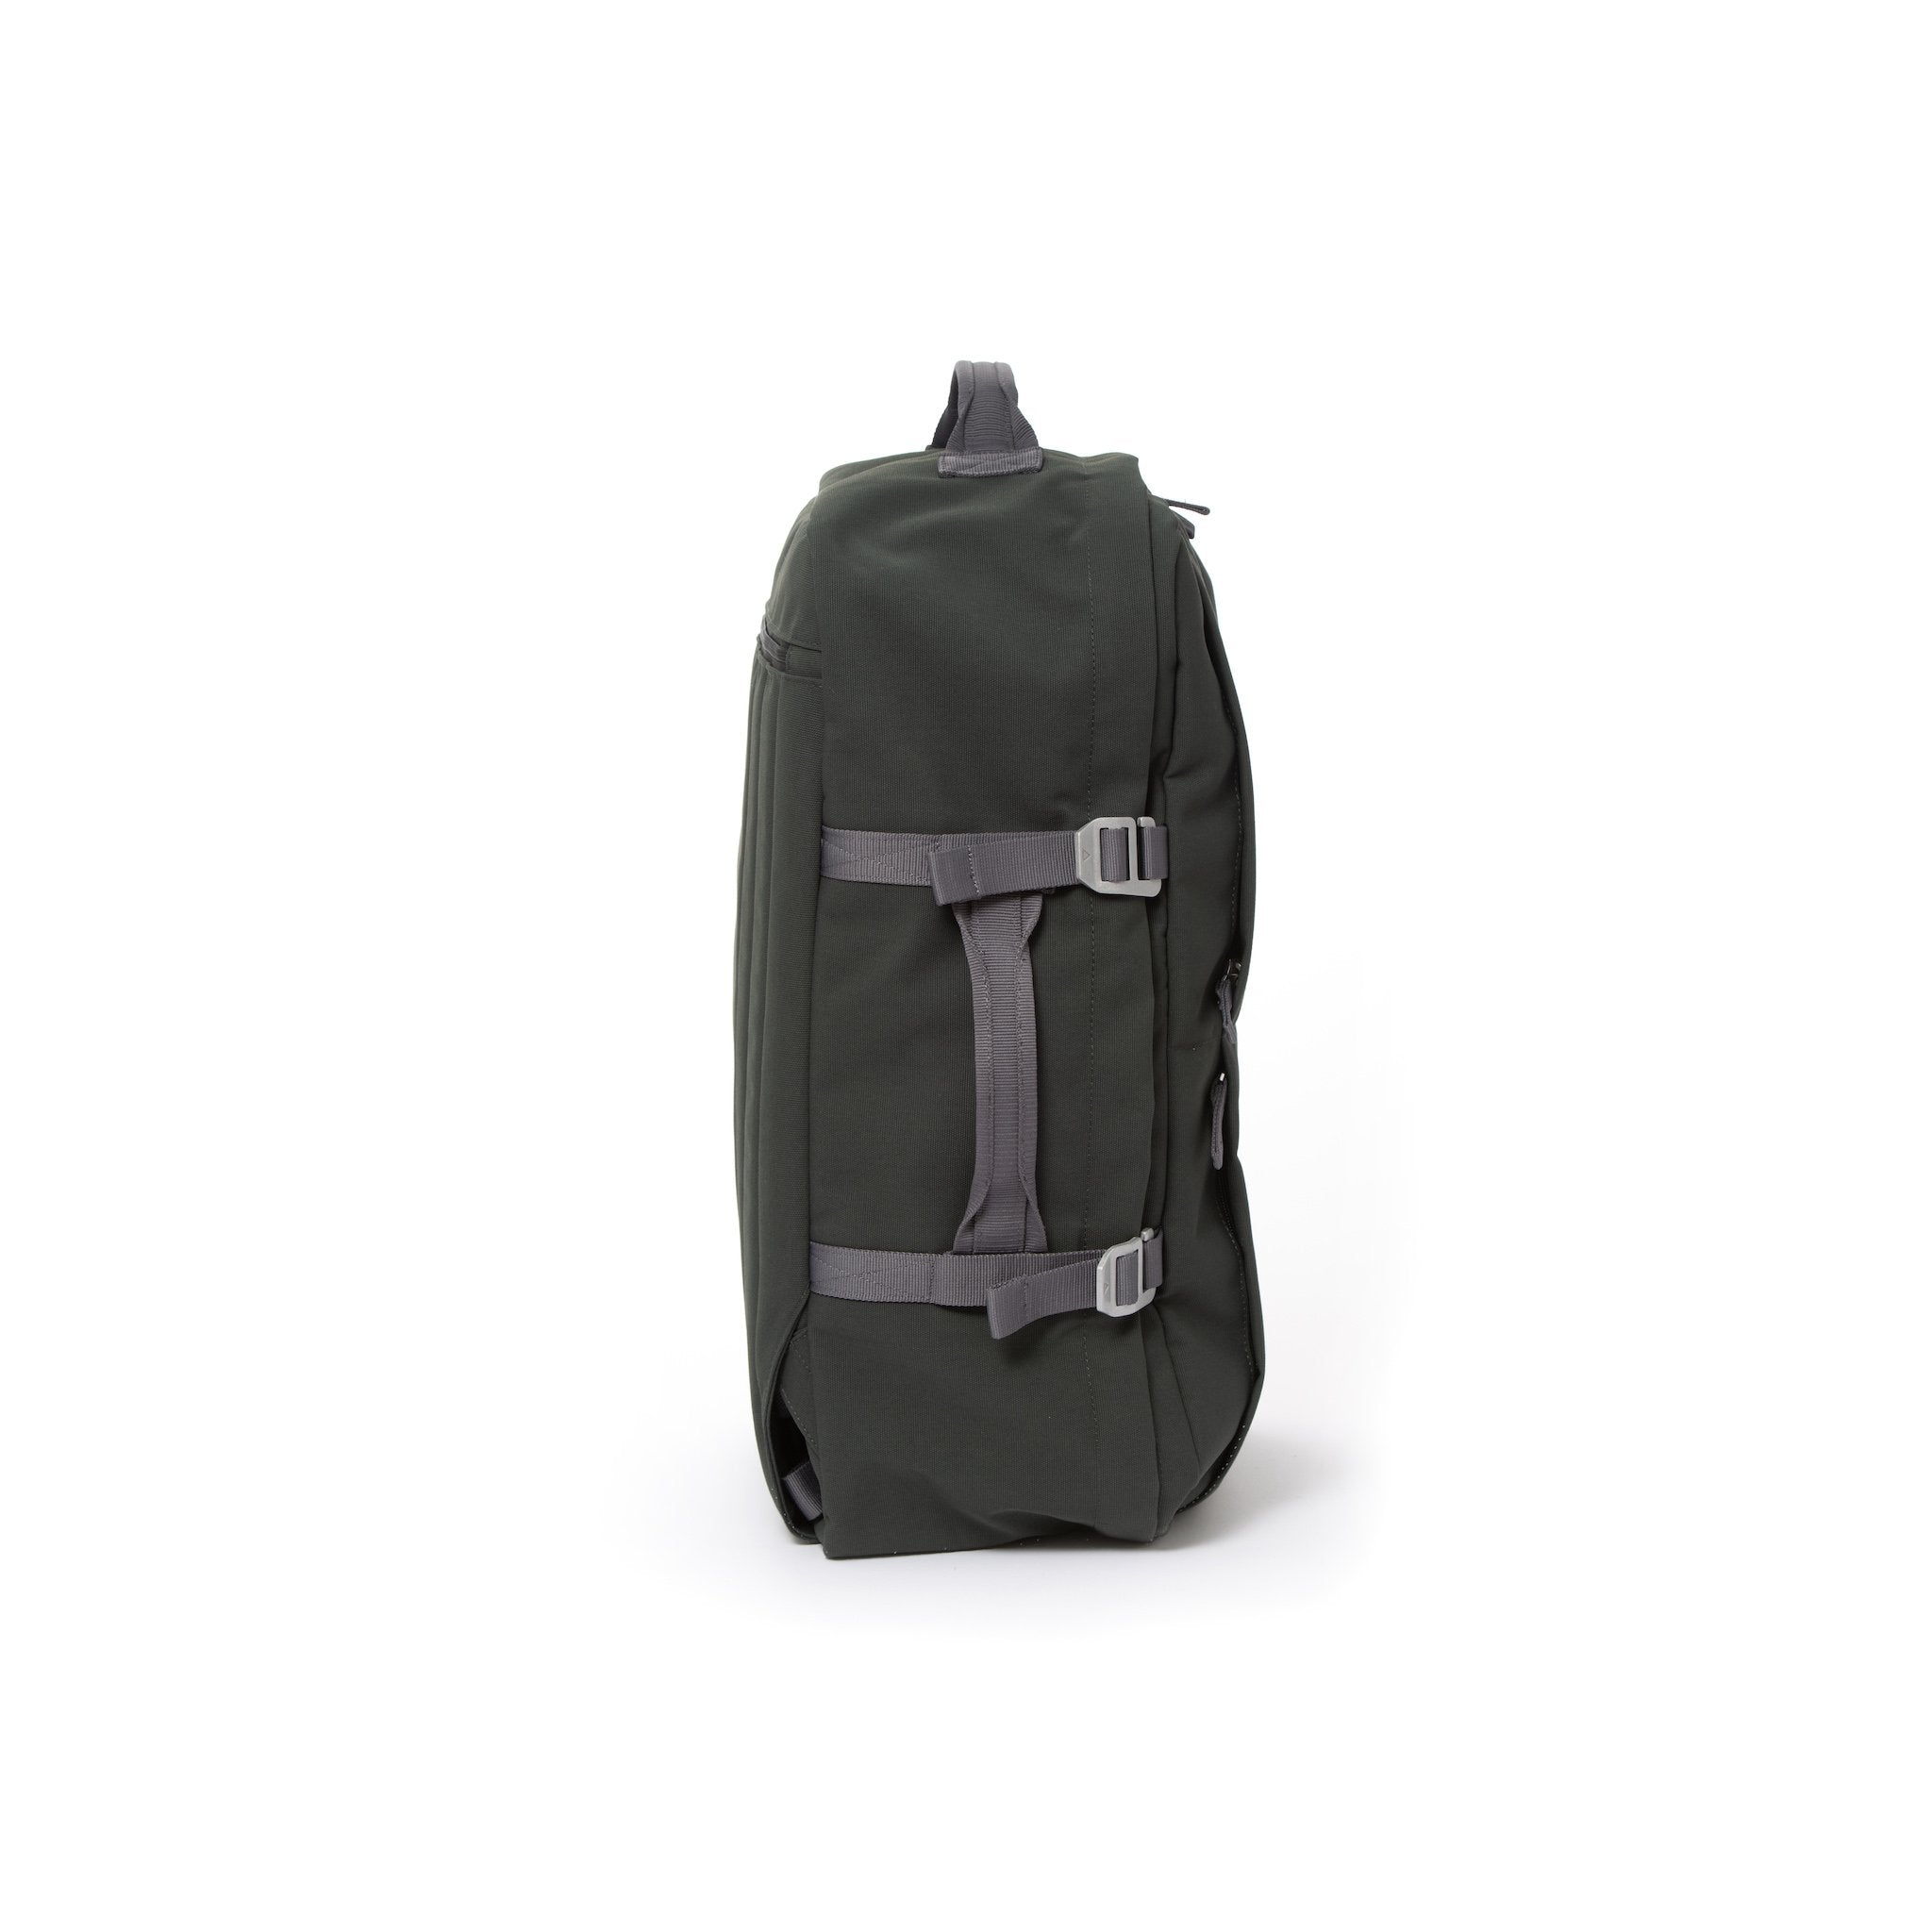 Grey recycled canvas travel backpack with compression side straps.